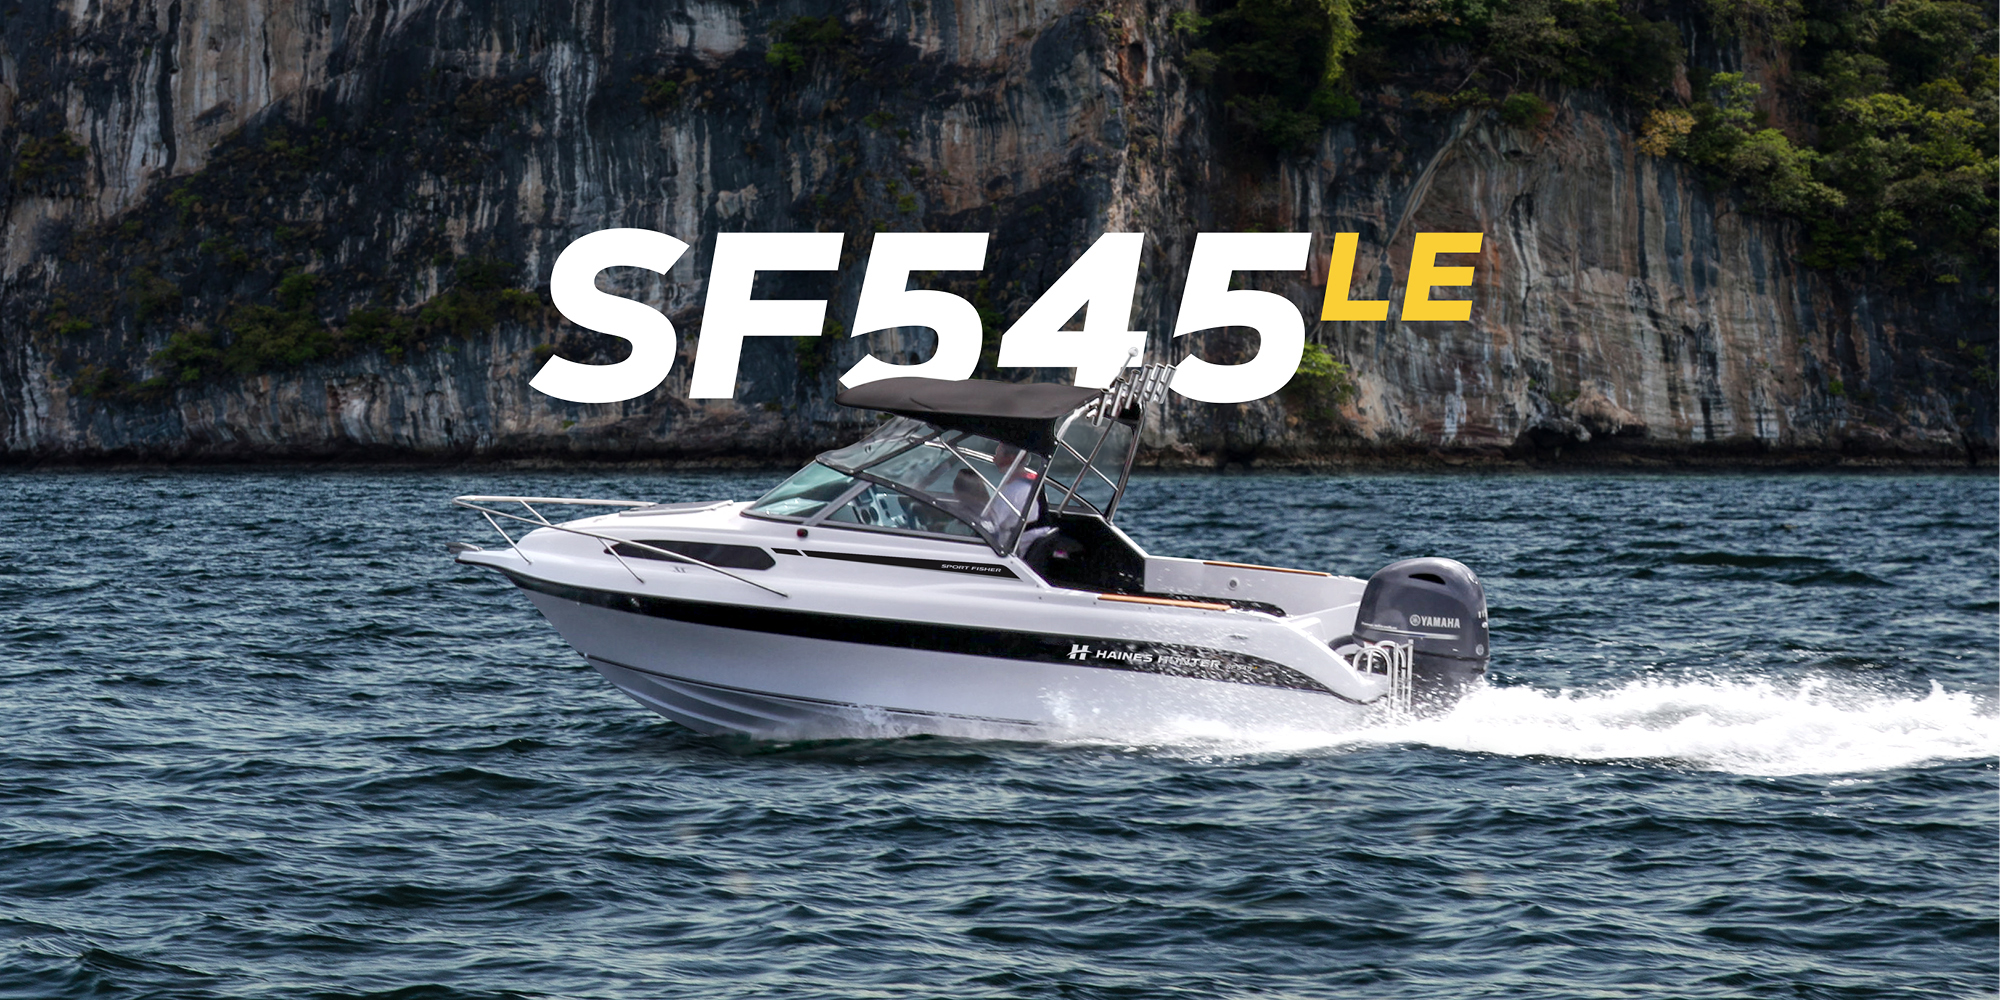 Haines Hunter SF545LE HERO | Haines Hunter HQ